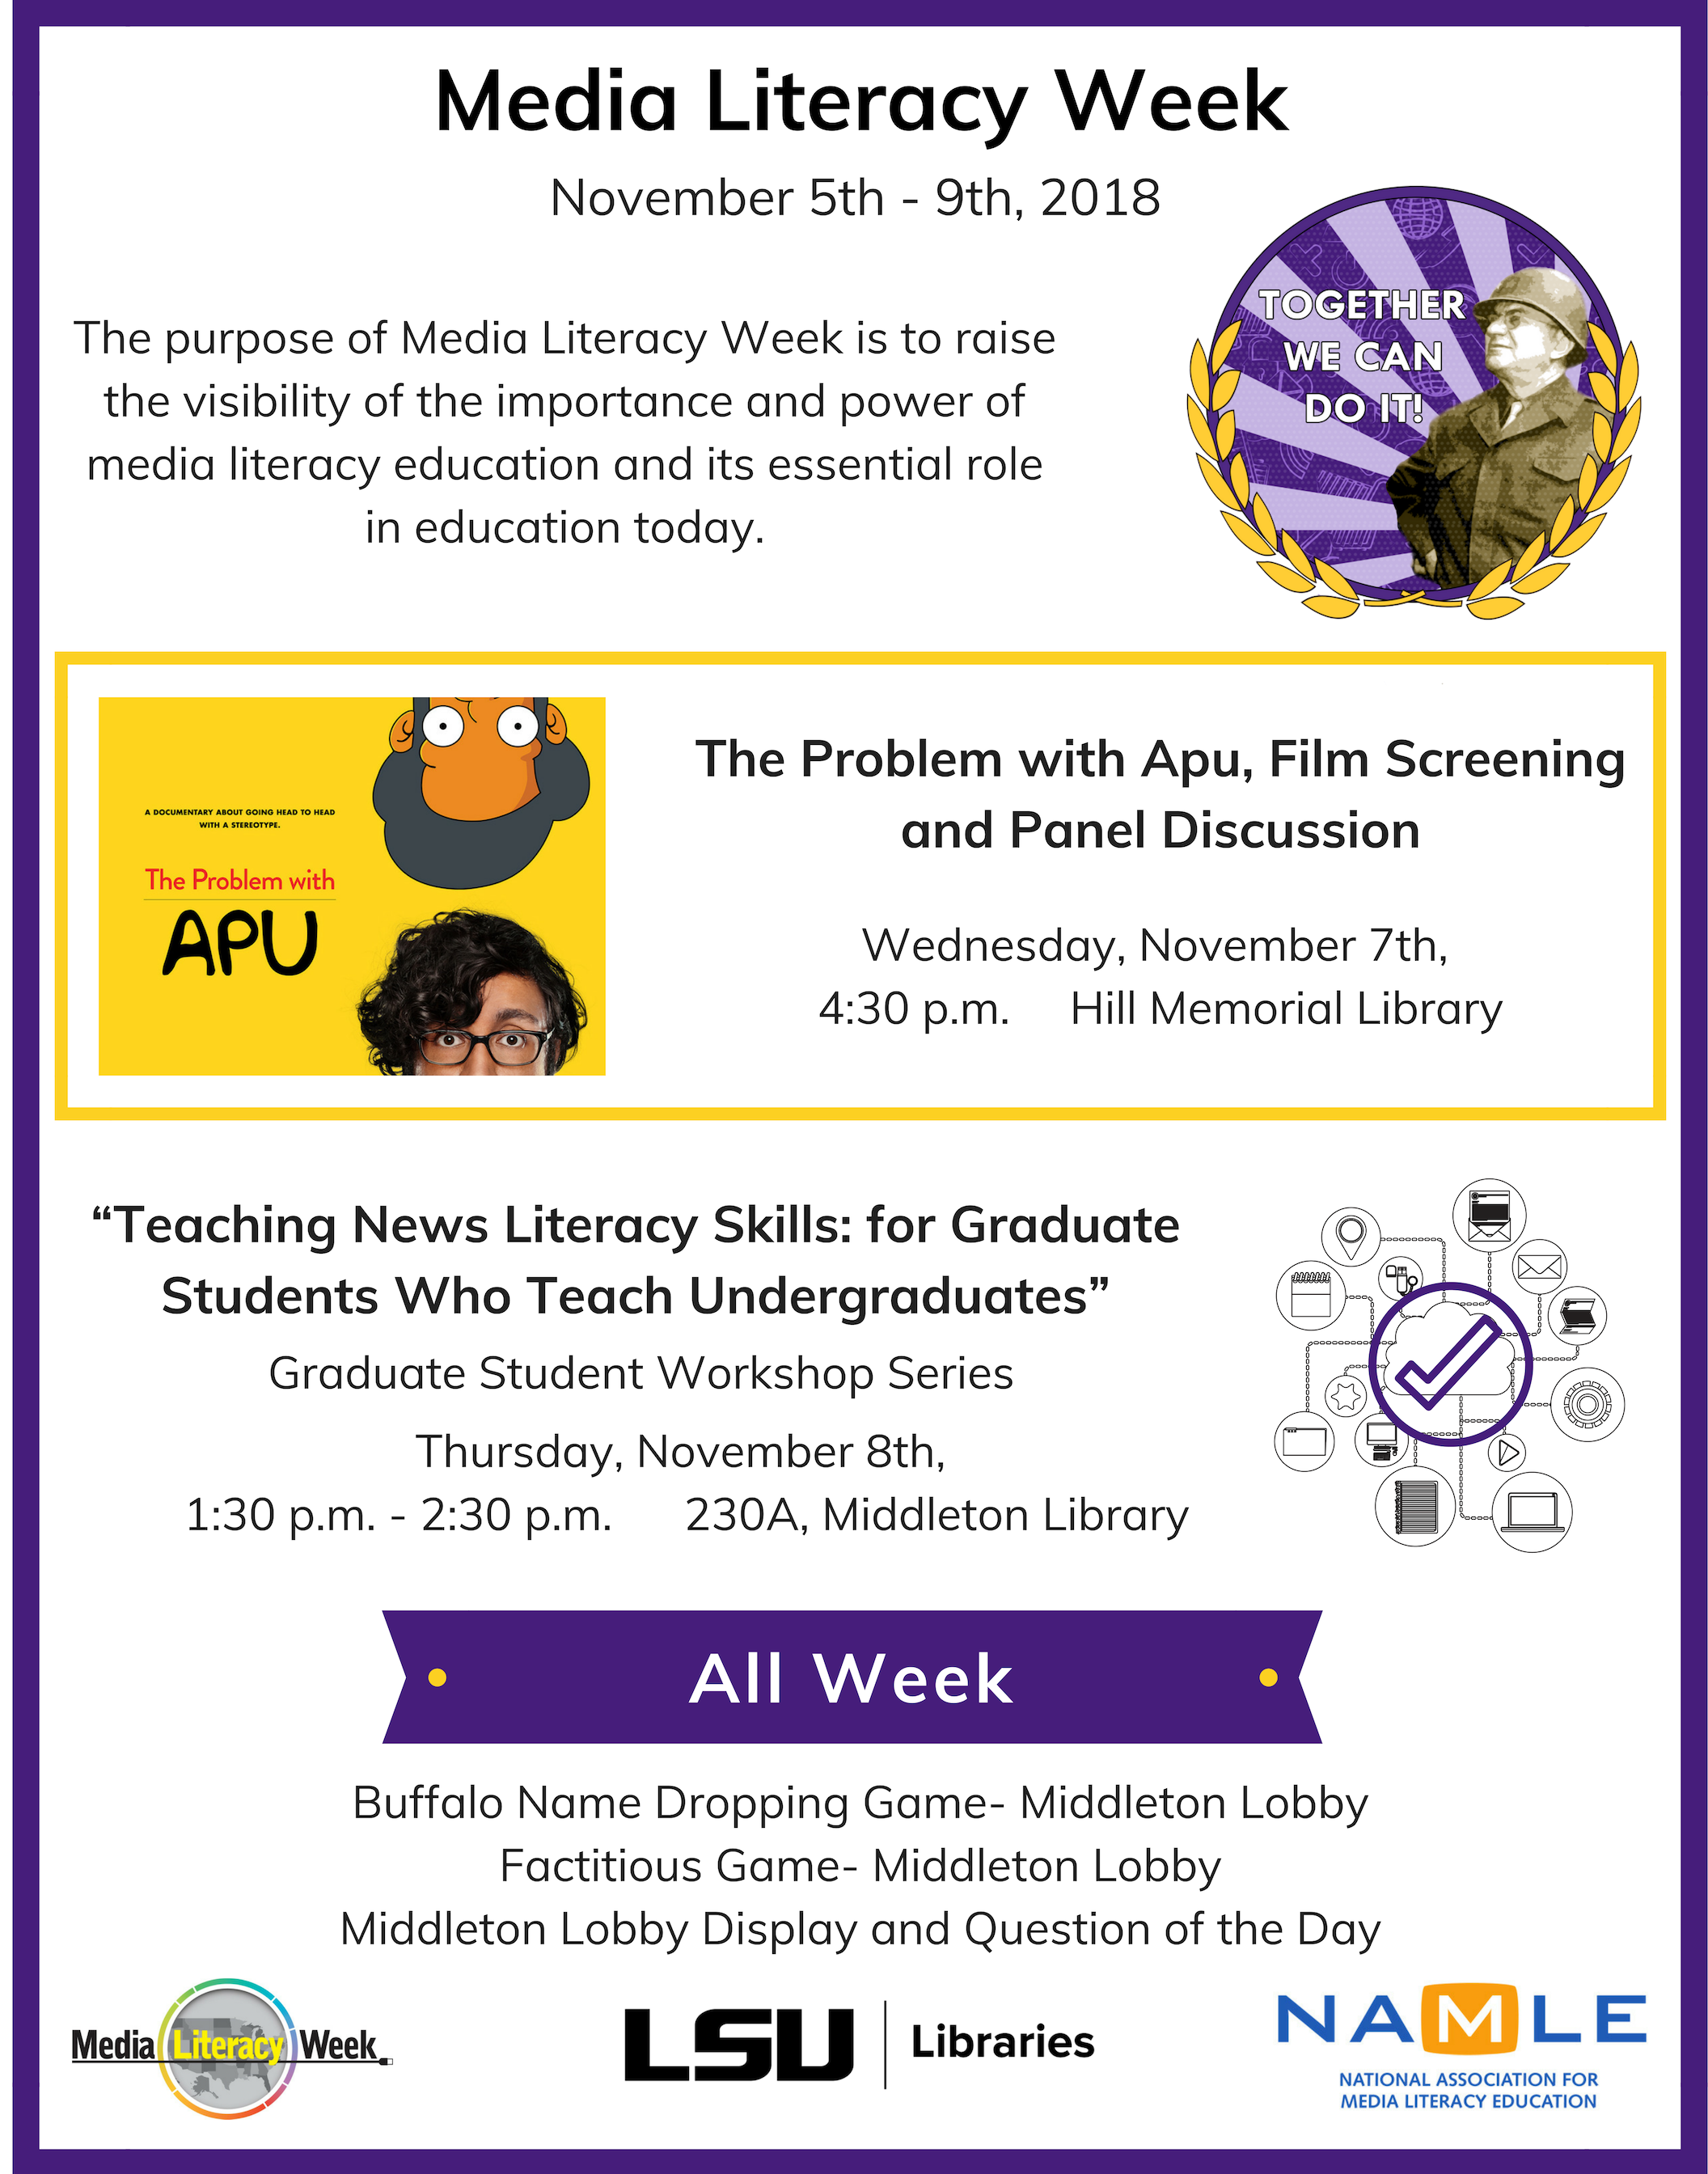 Media Literacy Week Events